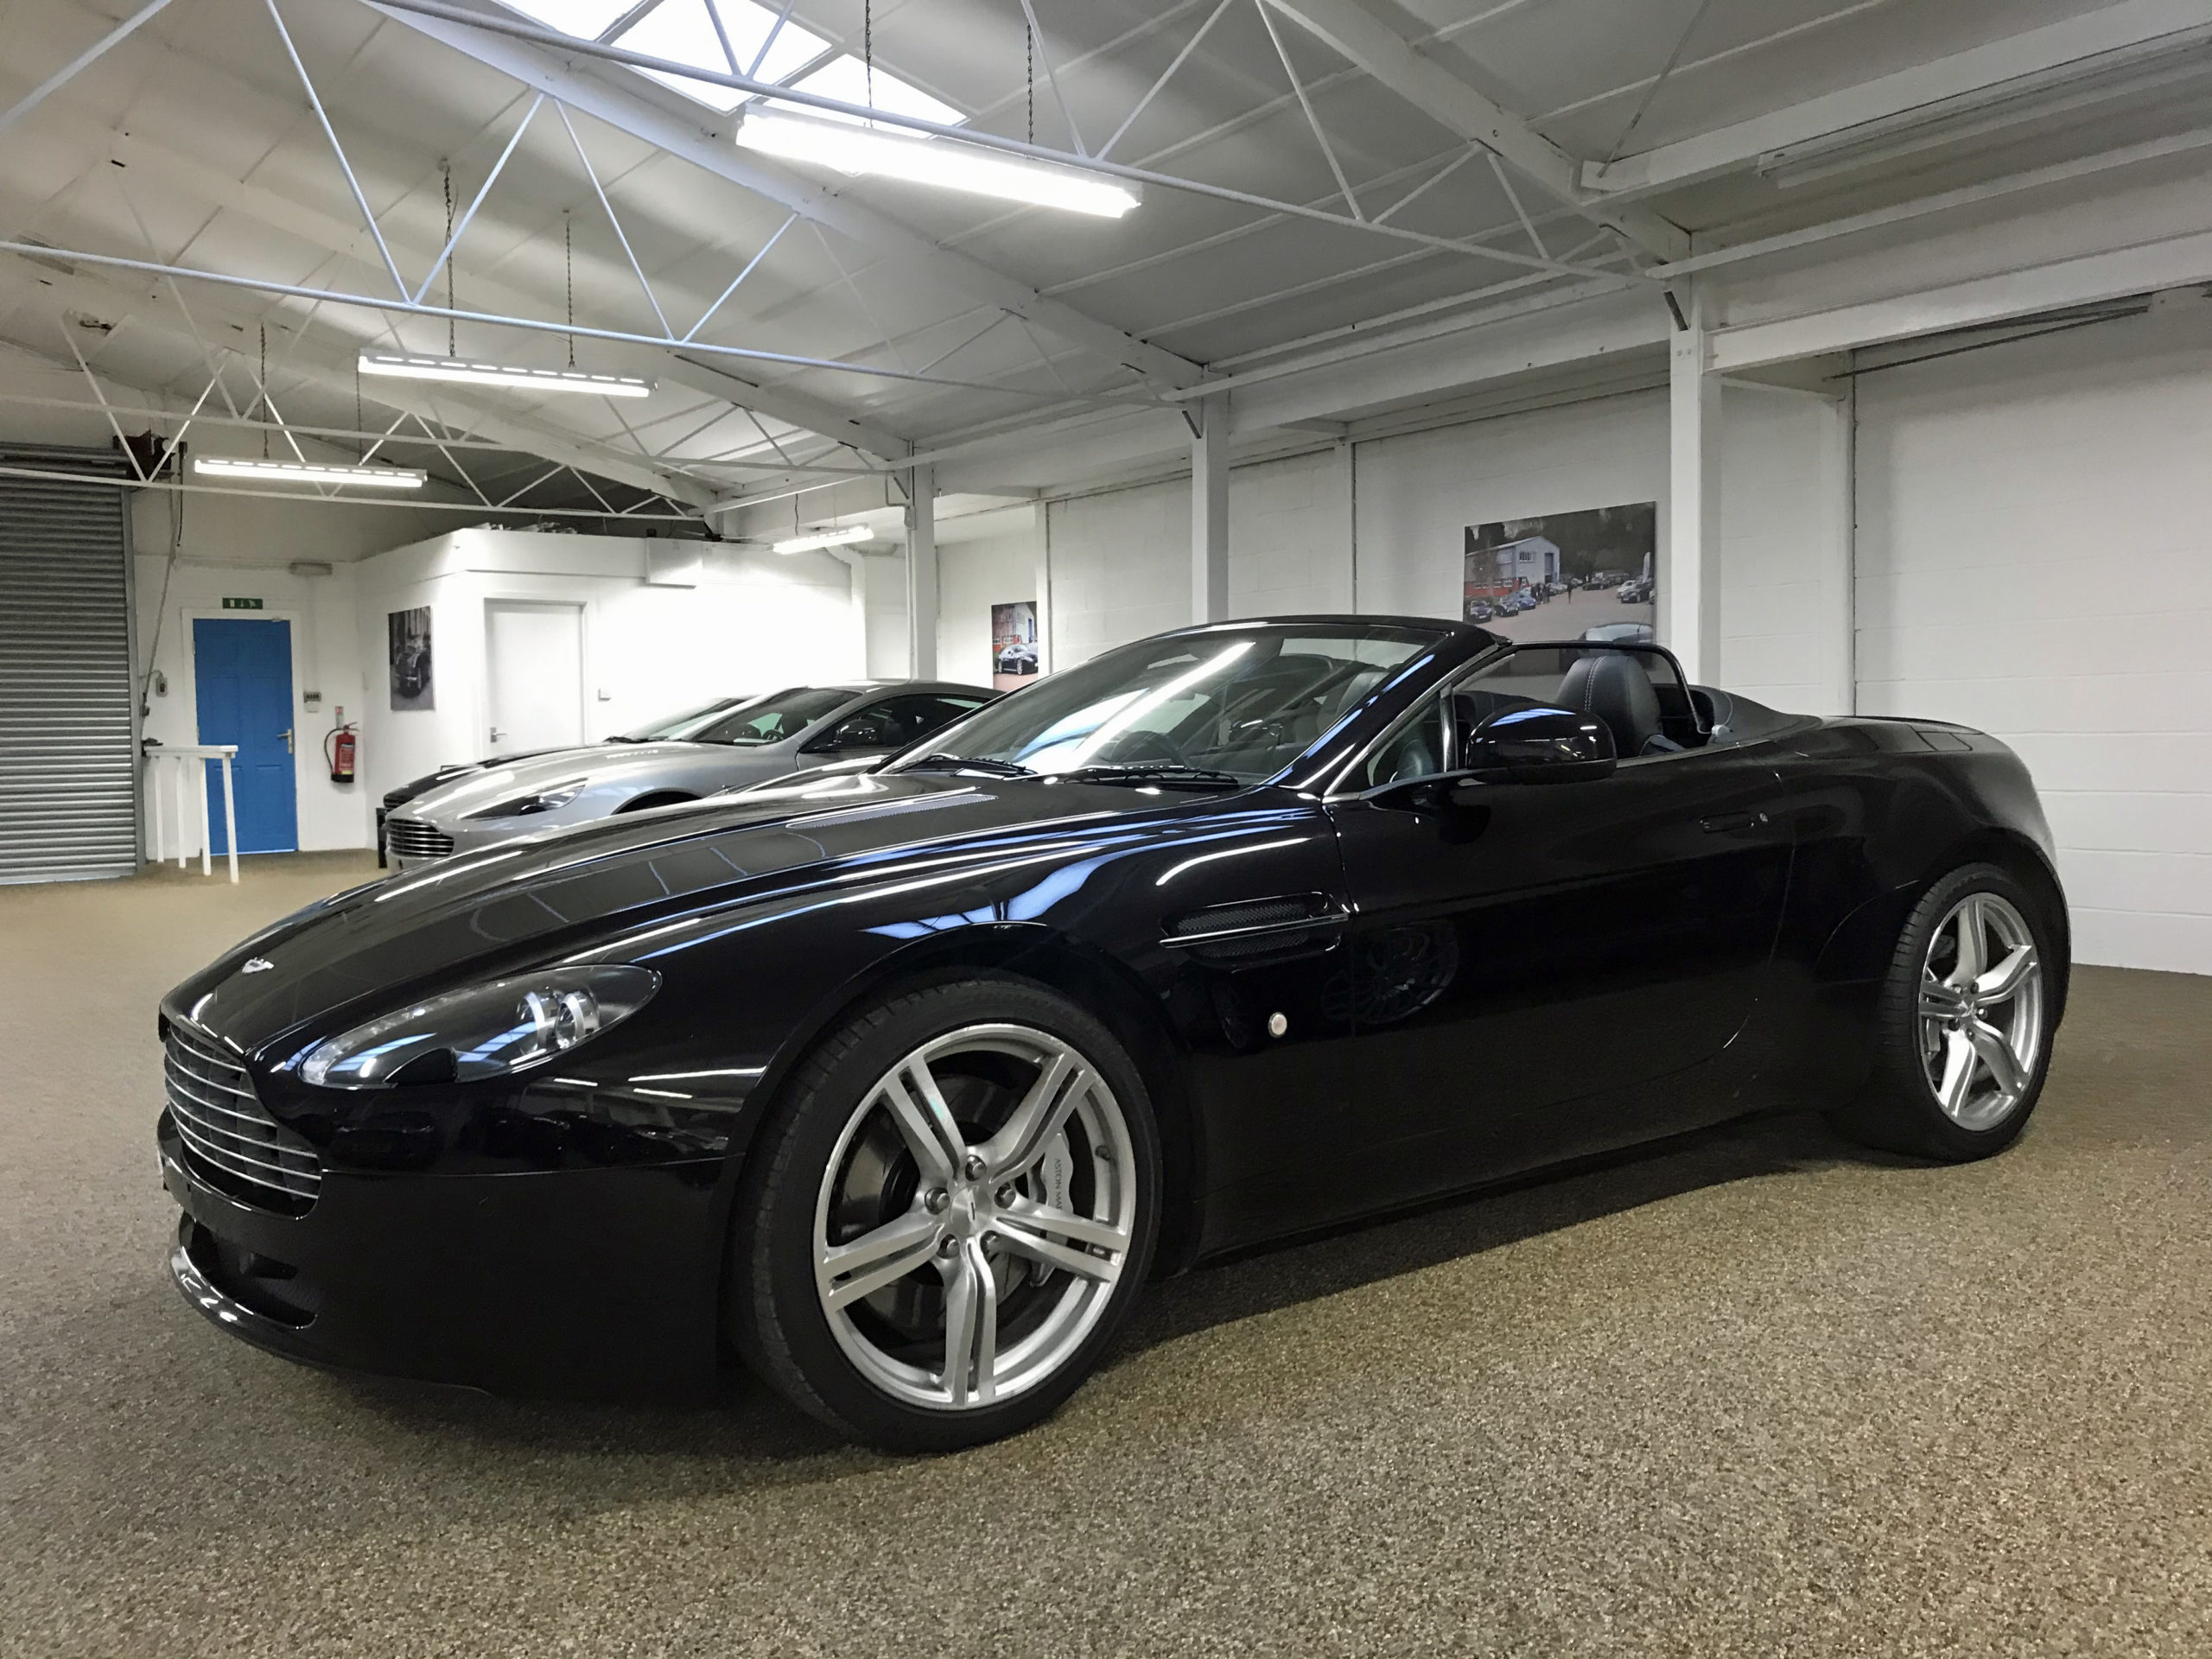 Used Aston Martin V8 Vantage 4.7 Roadster for sale